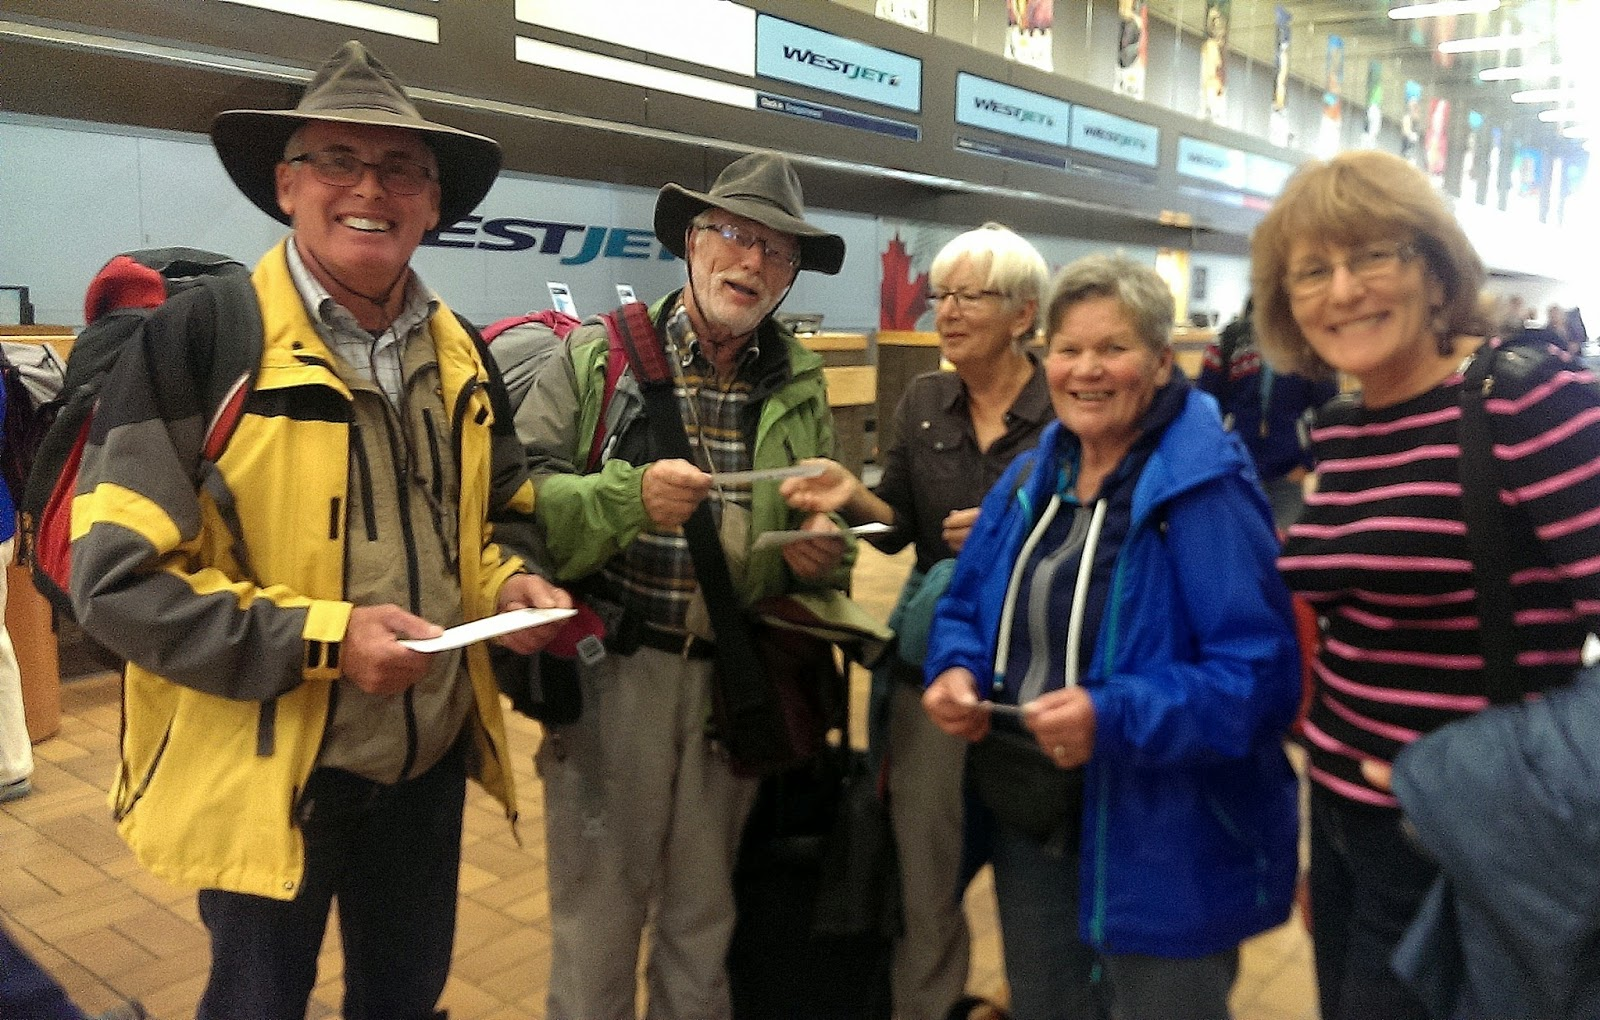 Whitehorse Airport - Saying good-bye to Hansuli, Christian, Annemarie and Lisbeth